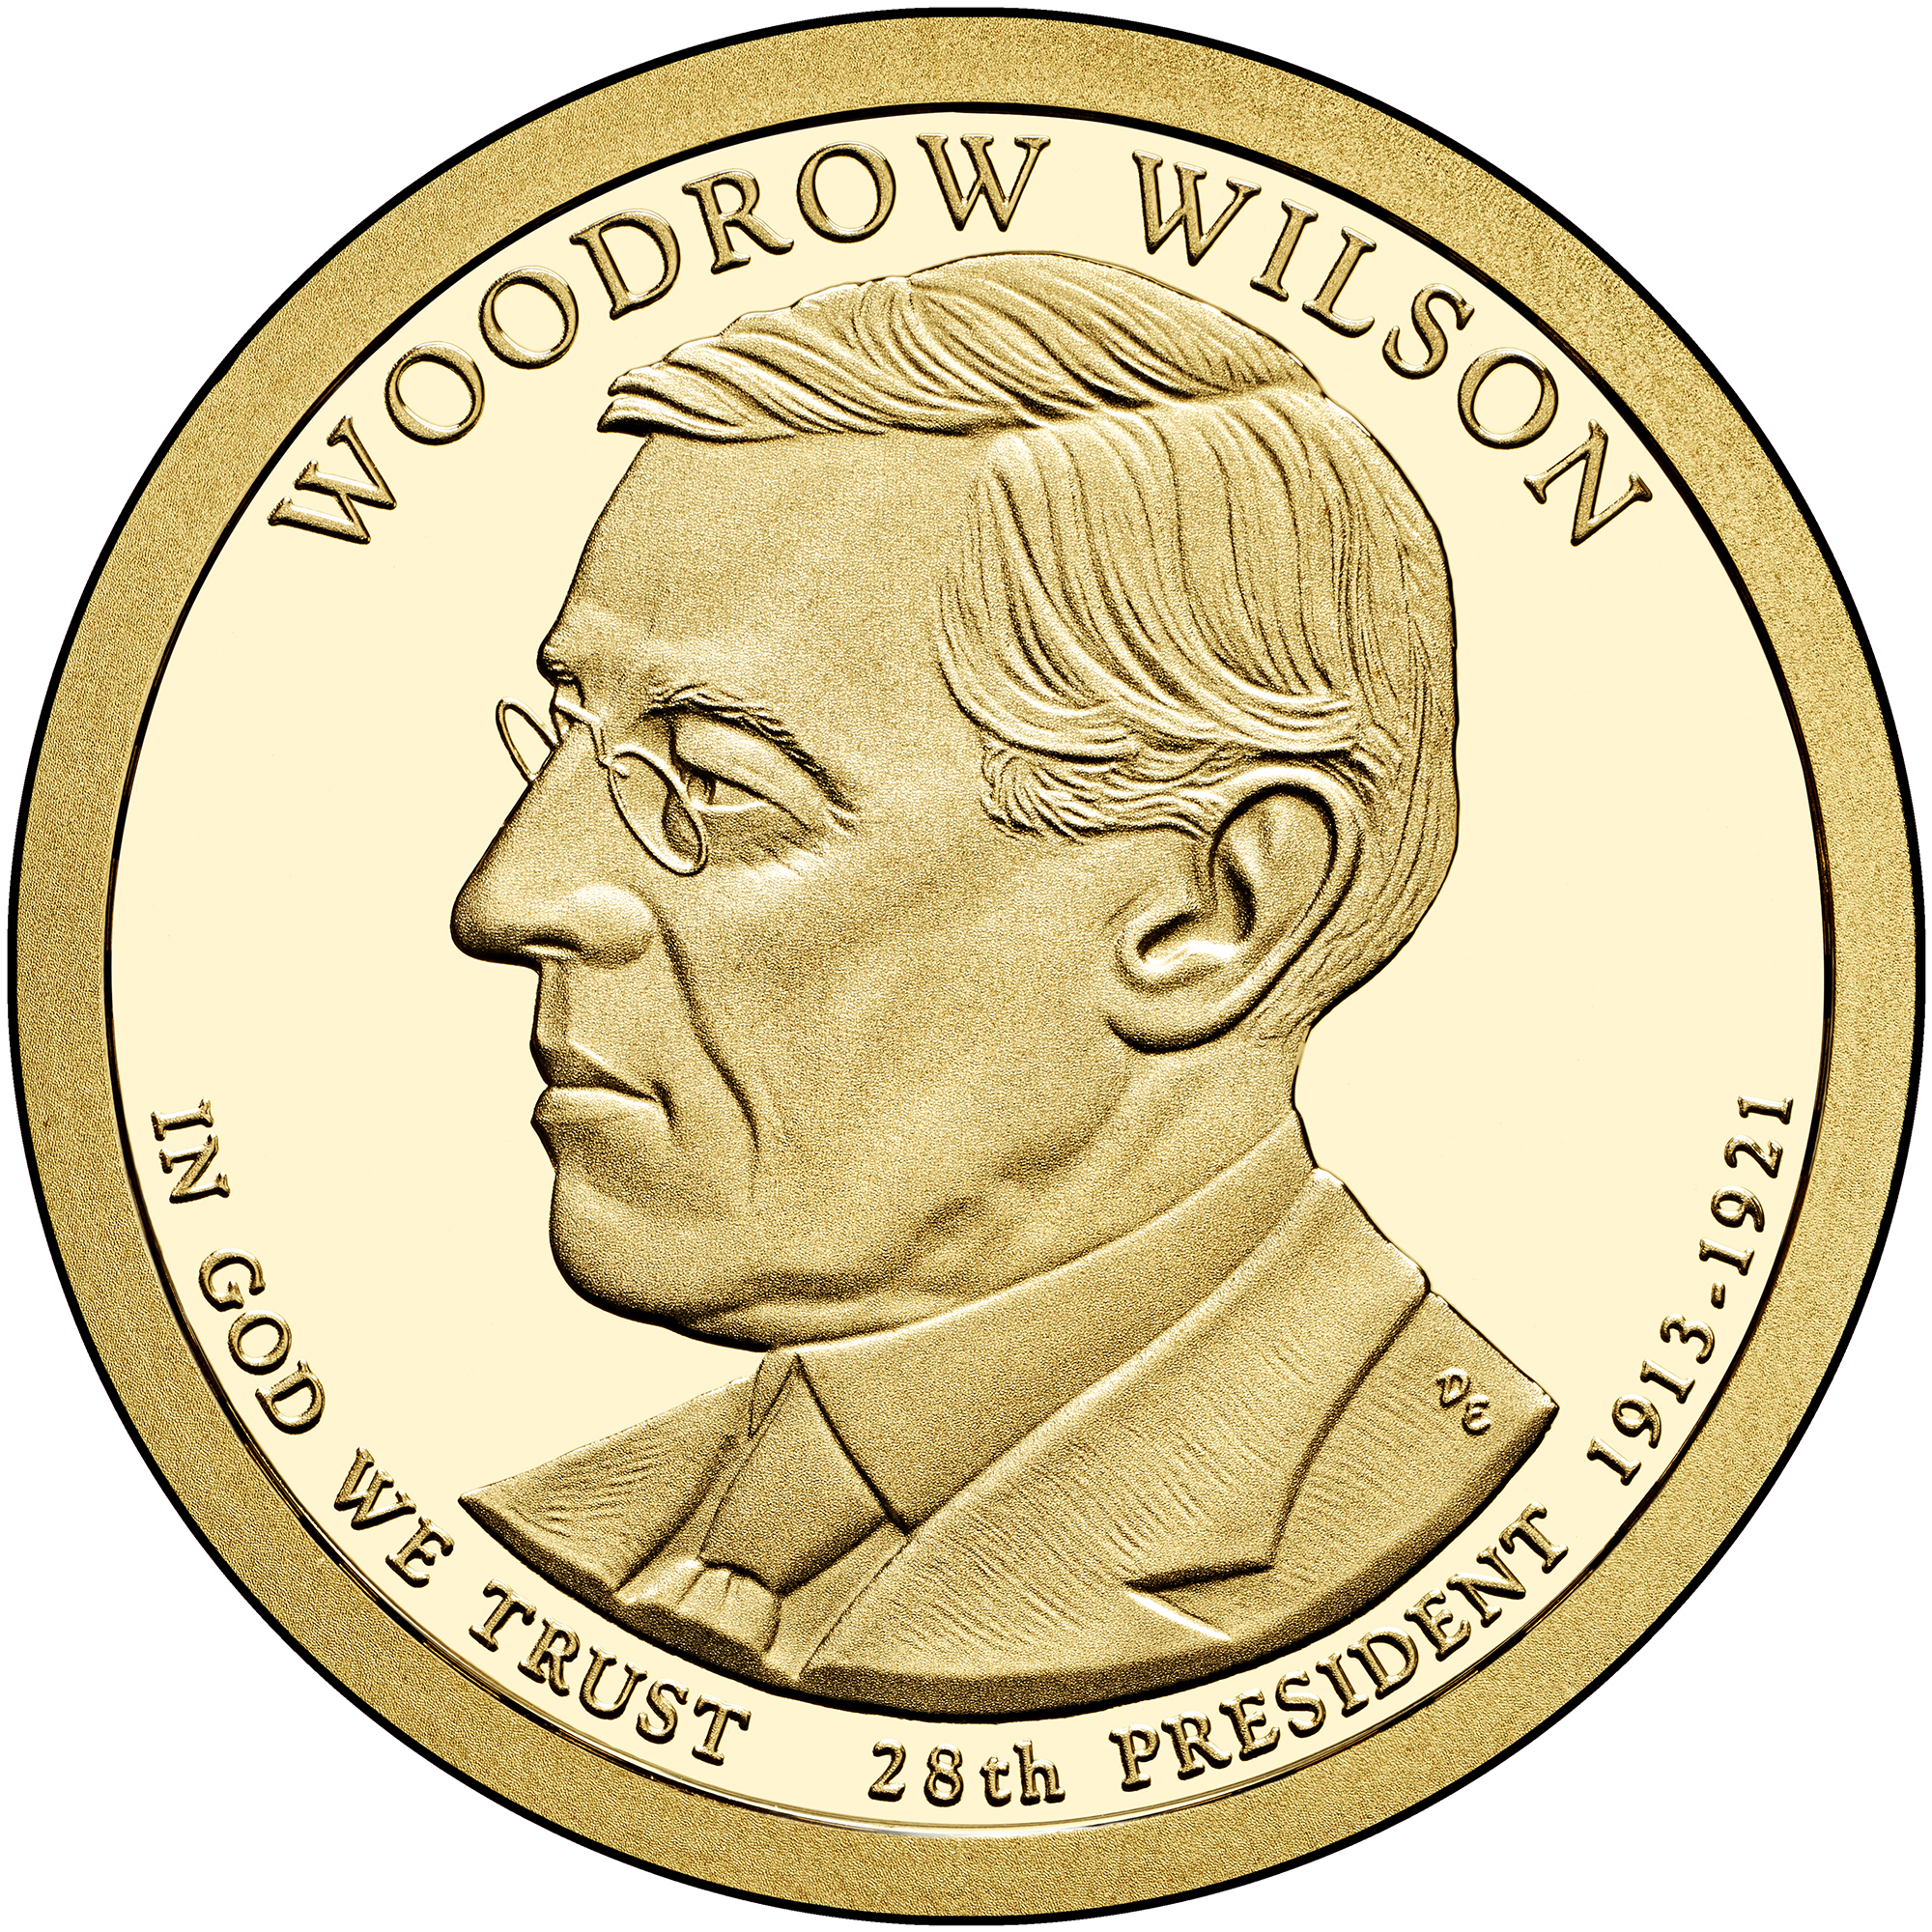 2013 Presidential Dollar Coin Woodrow Wilson Proof Obverse